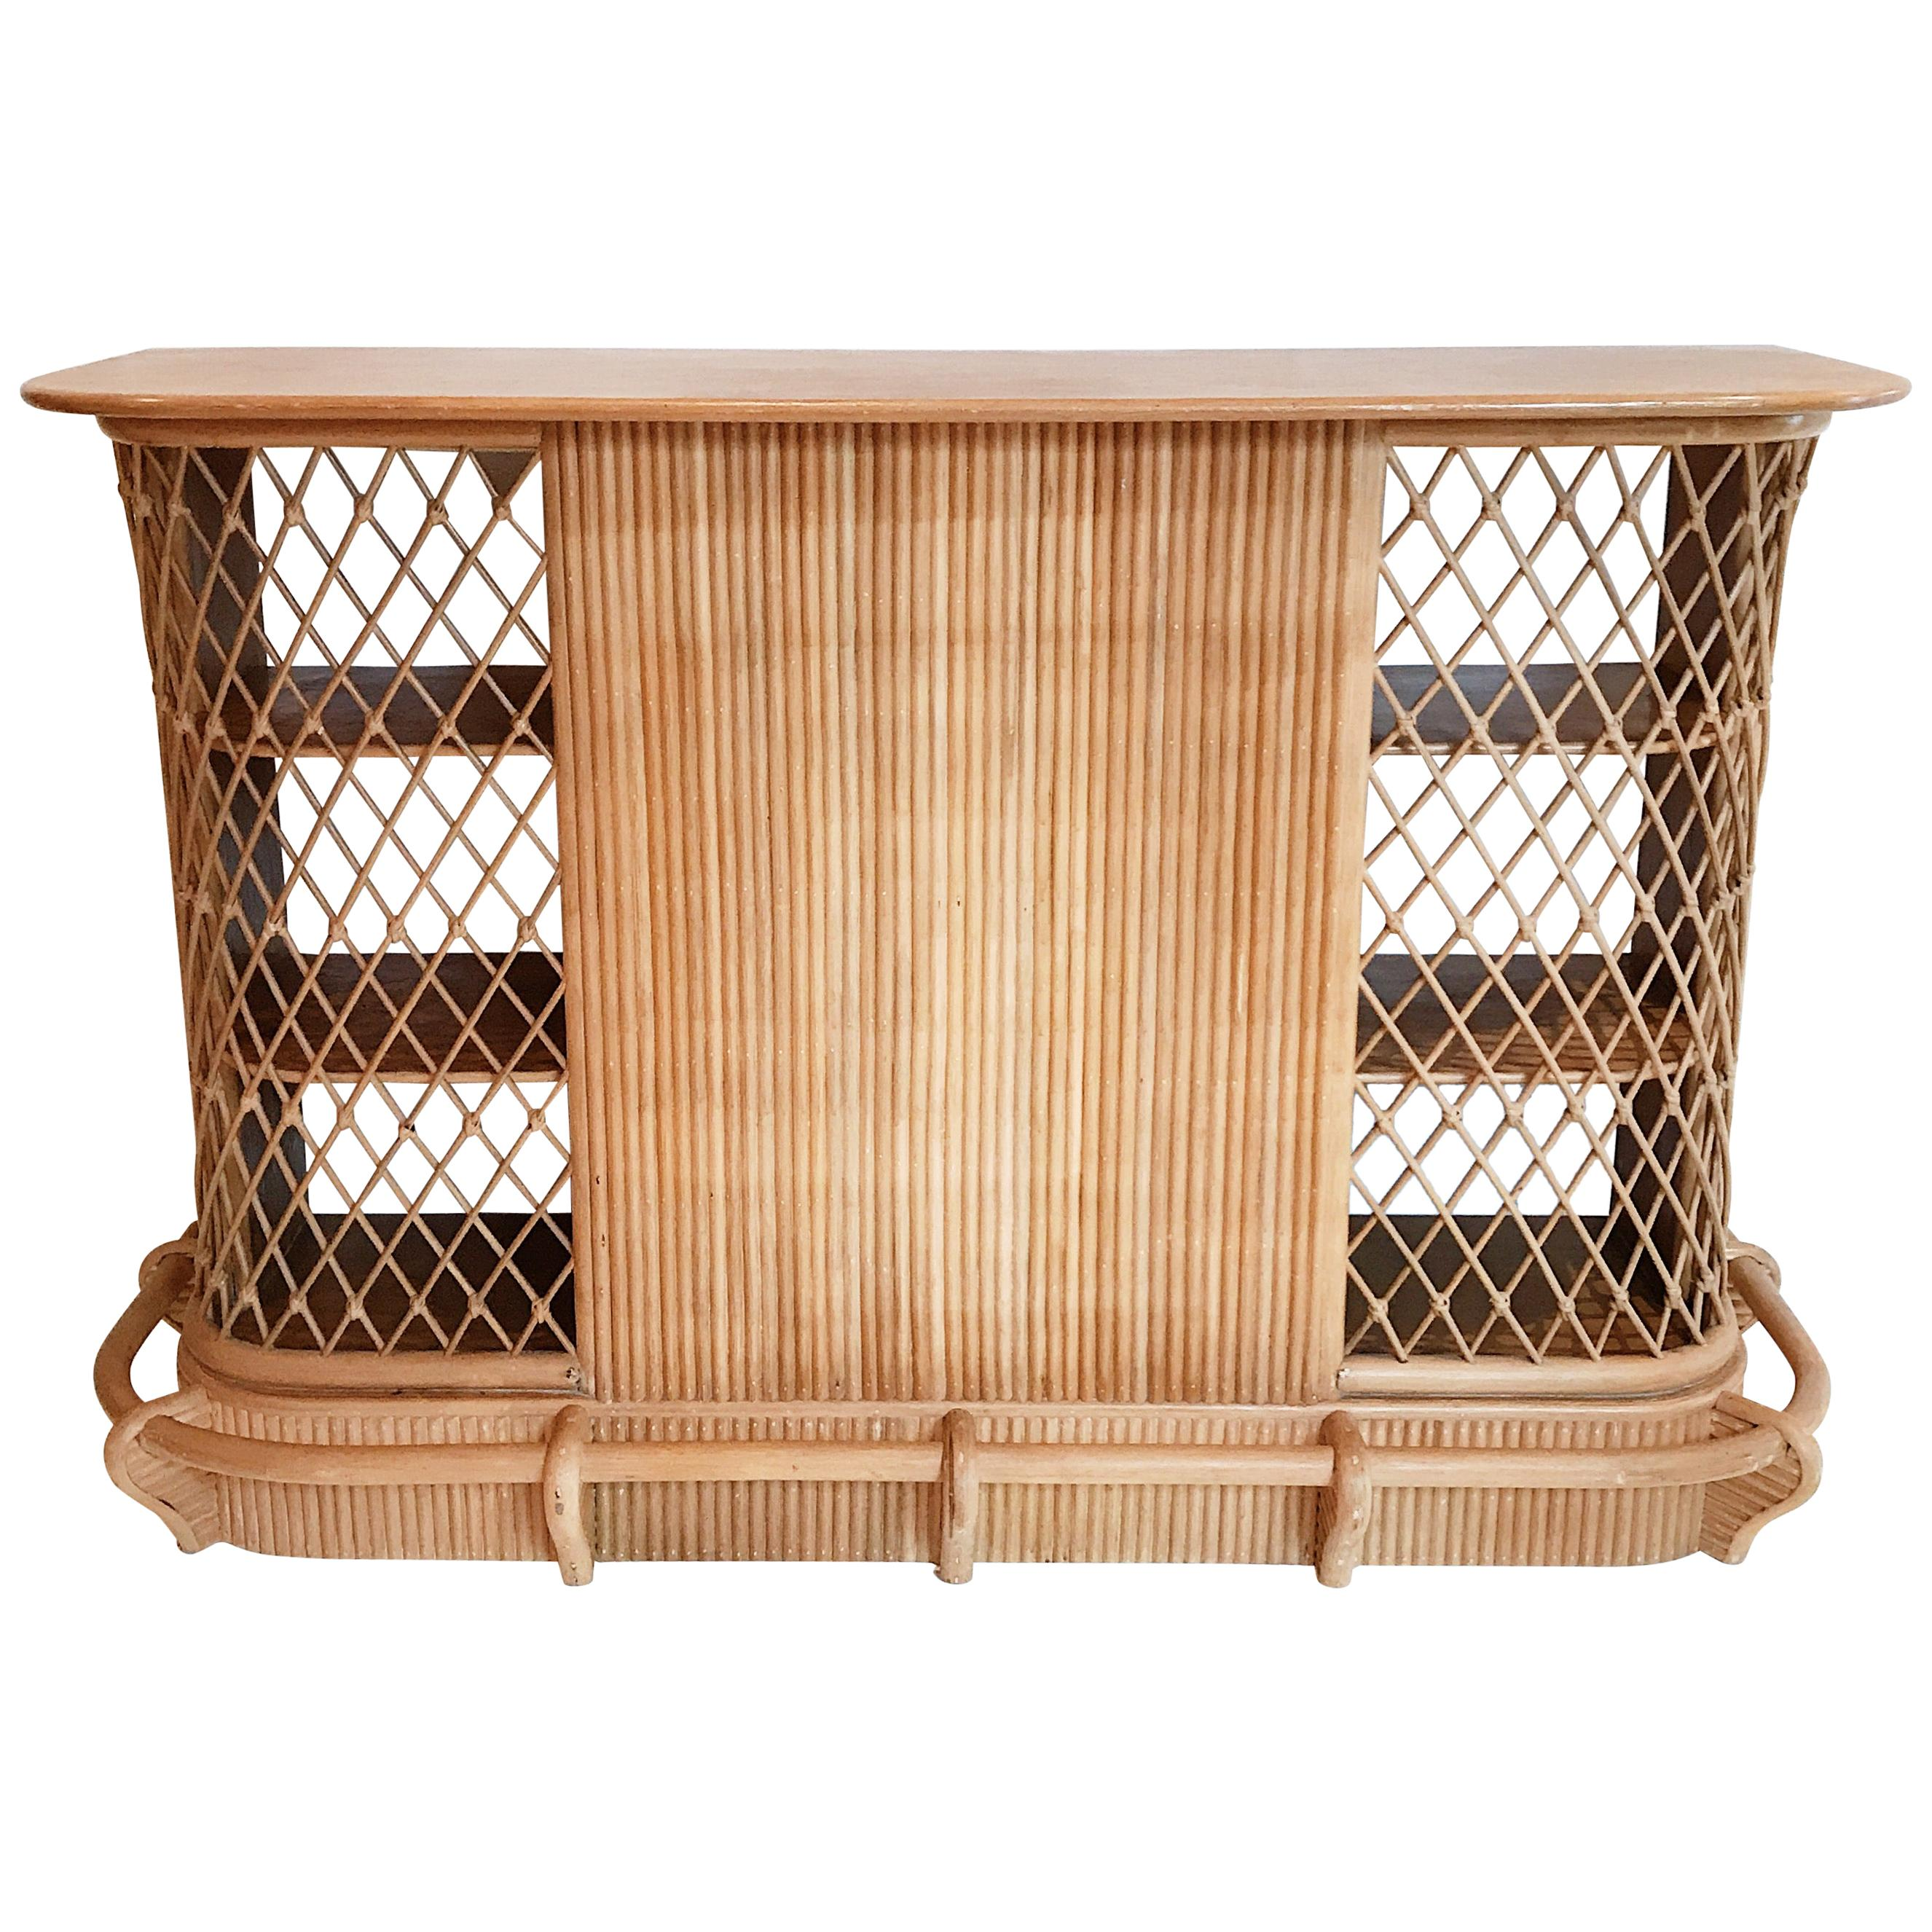 Philippine Furniture   541 For Sale At 1stdibs